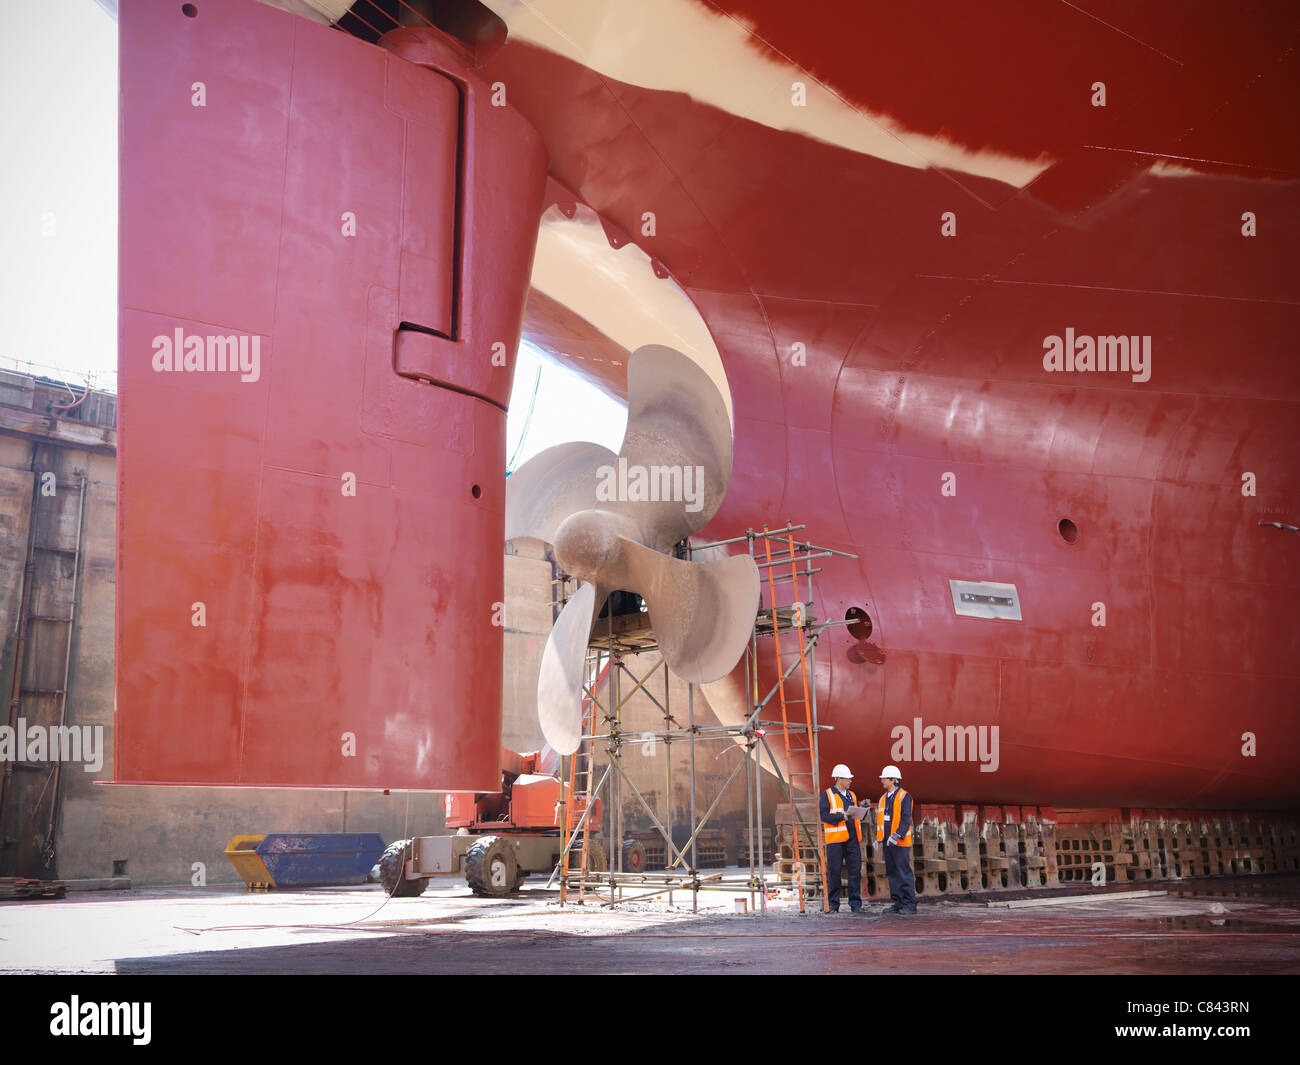 Workers talking on shipbuilding site - Stock Image